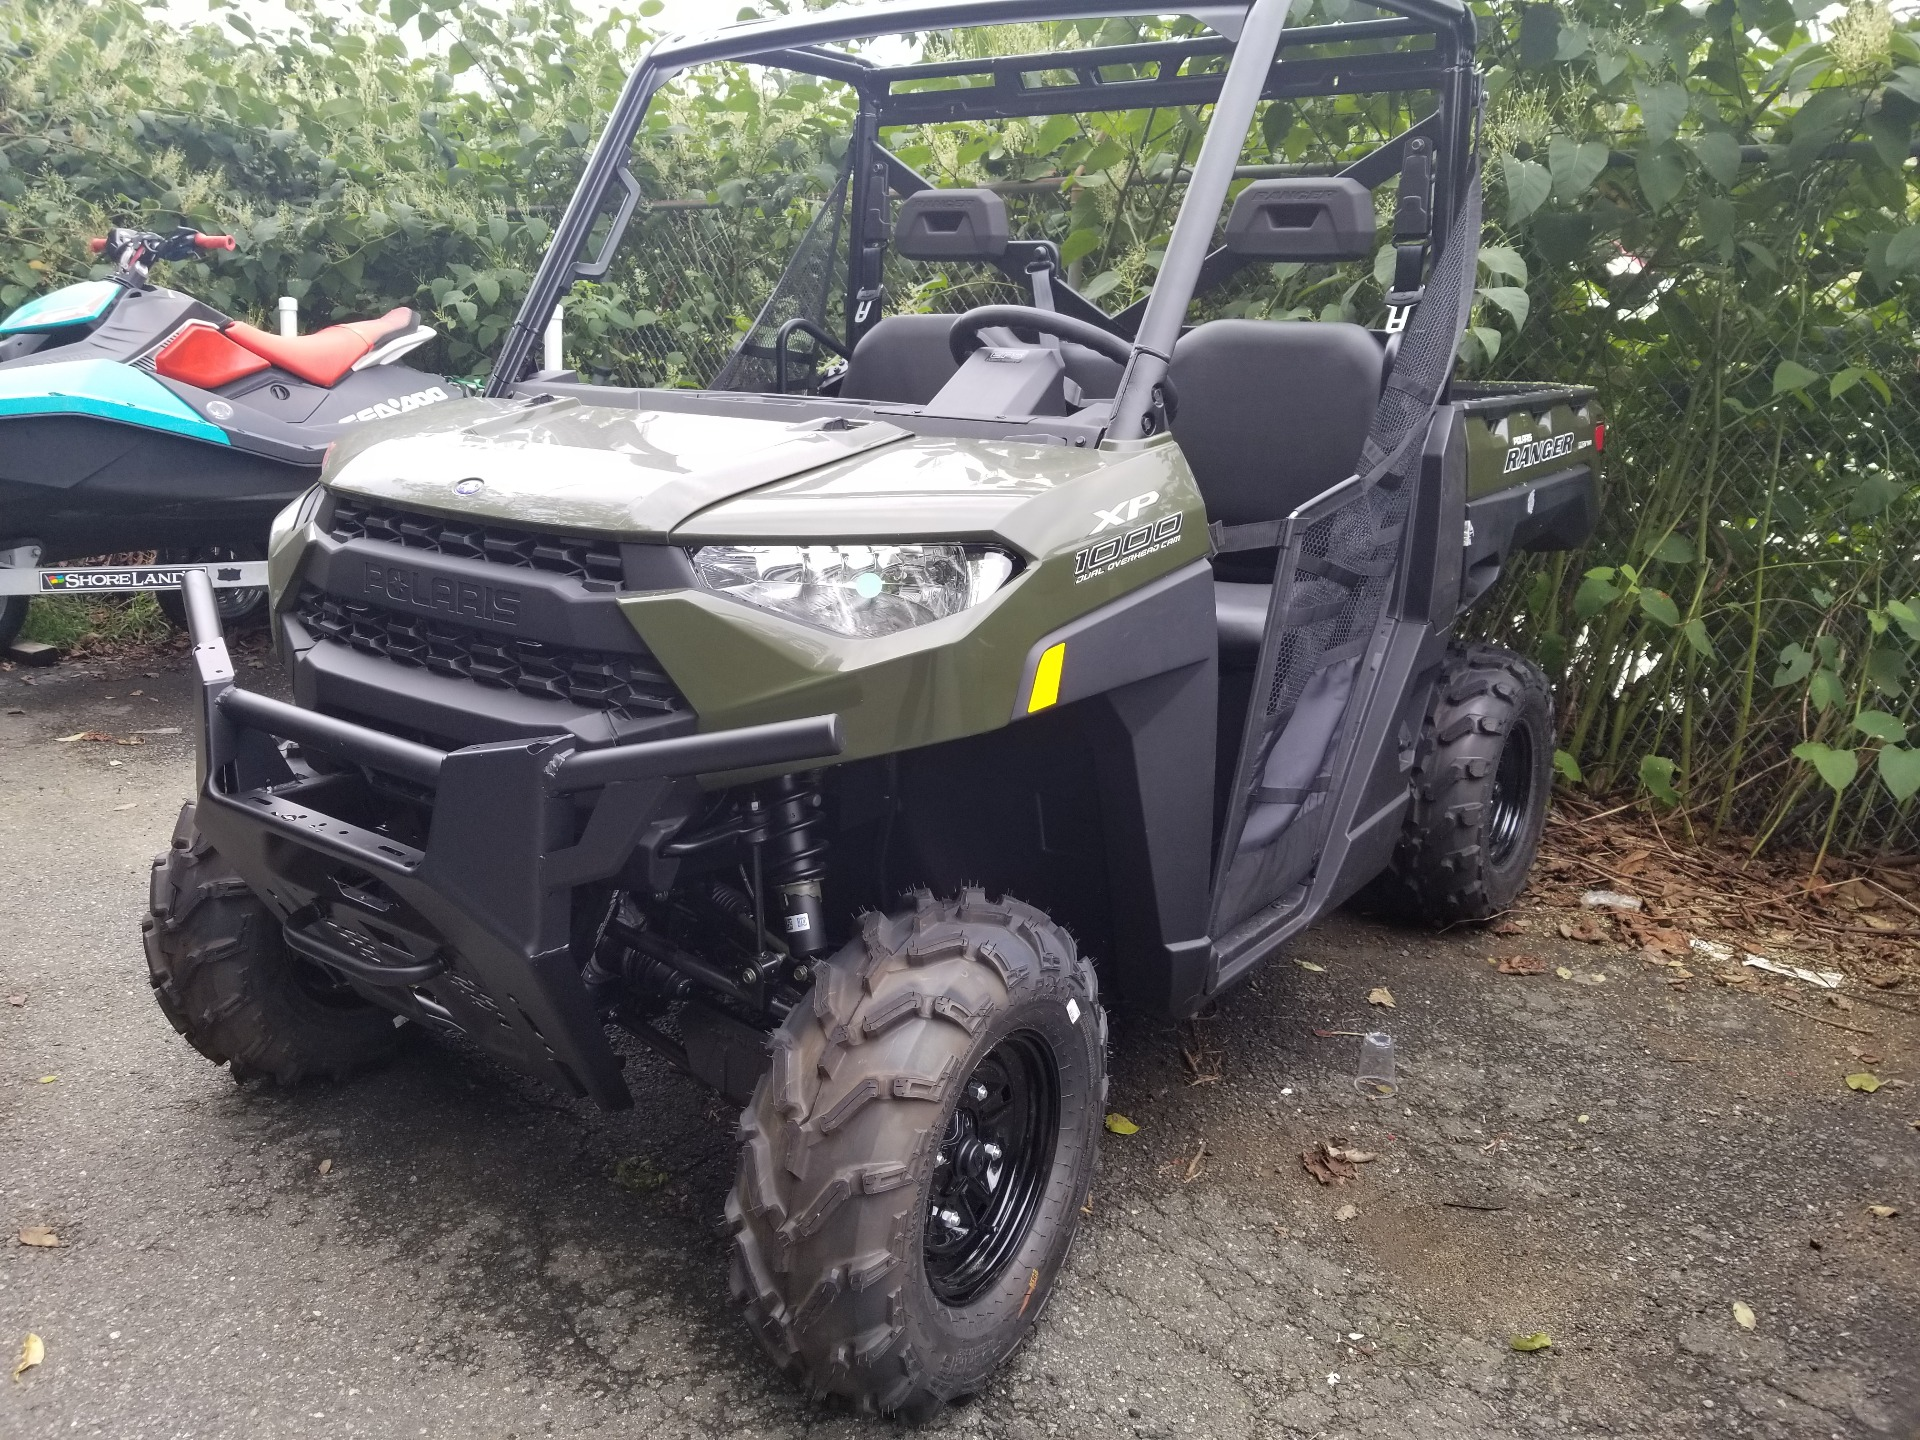 2019 Polaris Ranger XP 1000 EPS in Ledgewood, New Jersey - Photo 1